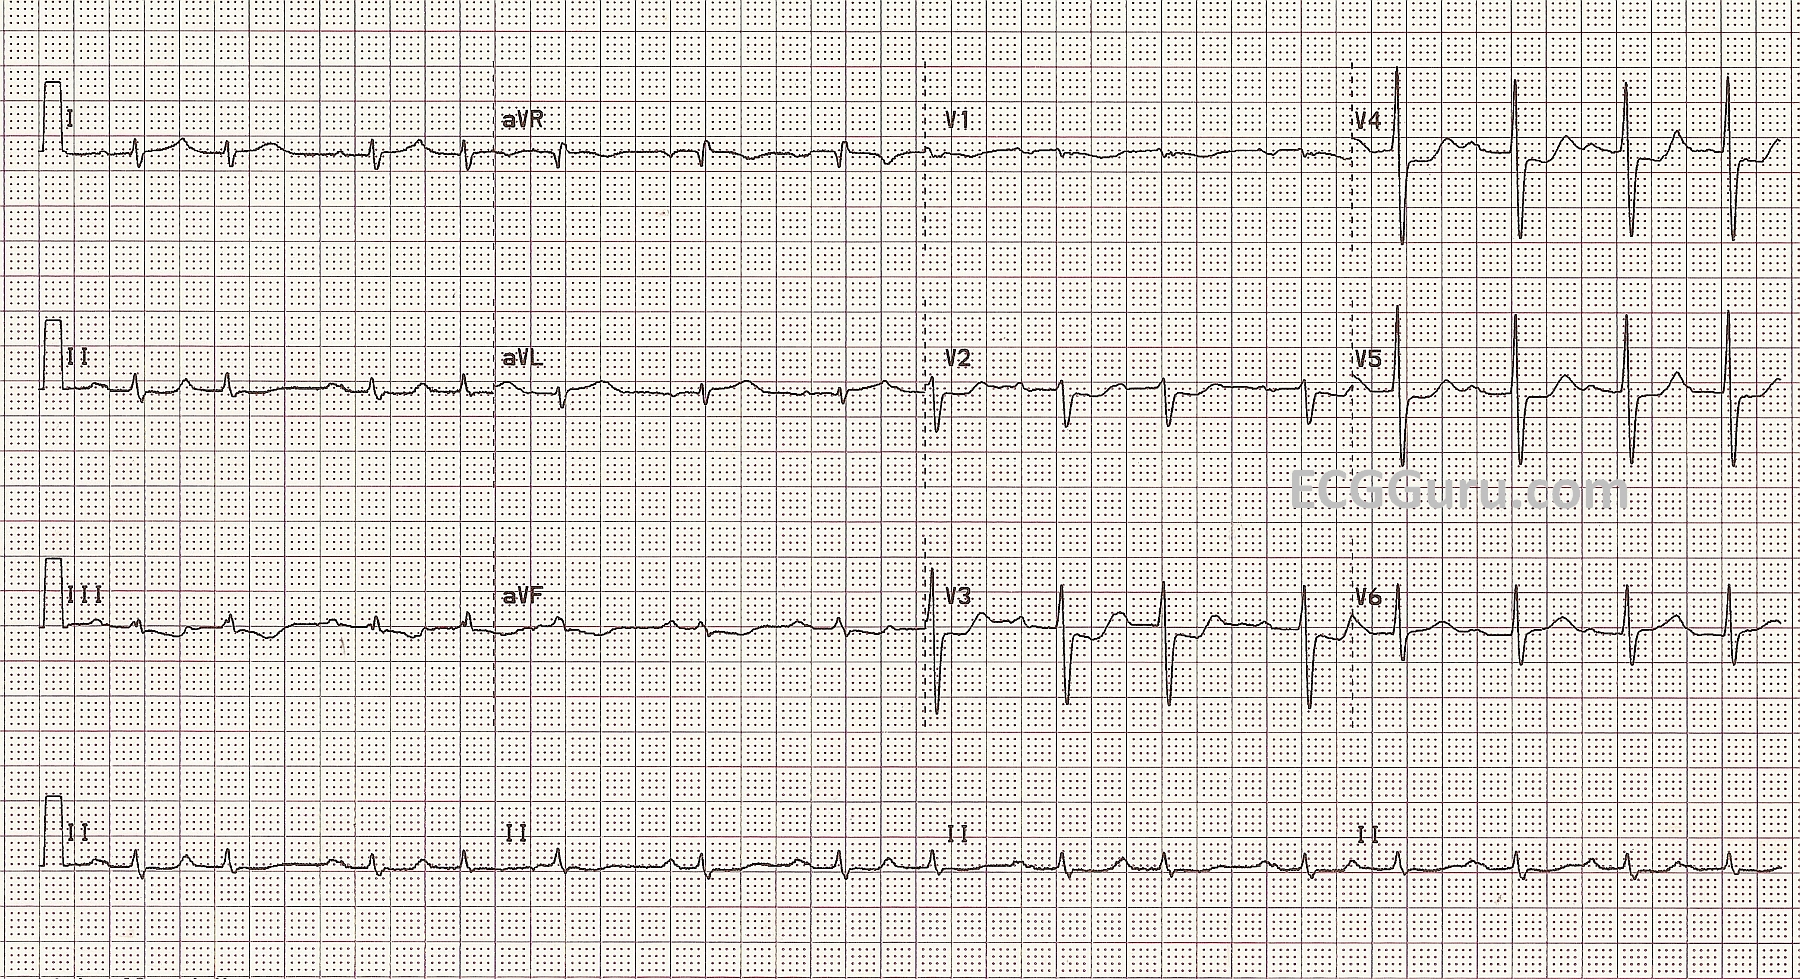 Acute M I Occluded Stents In Left Obtuse Marginal Artery Ecg Guru